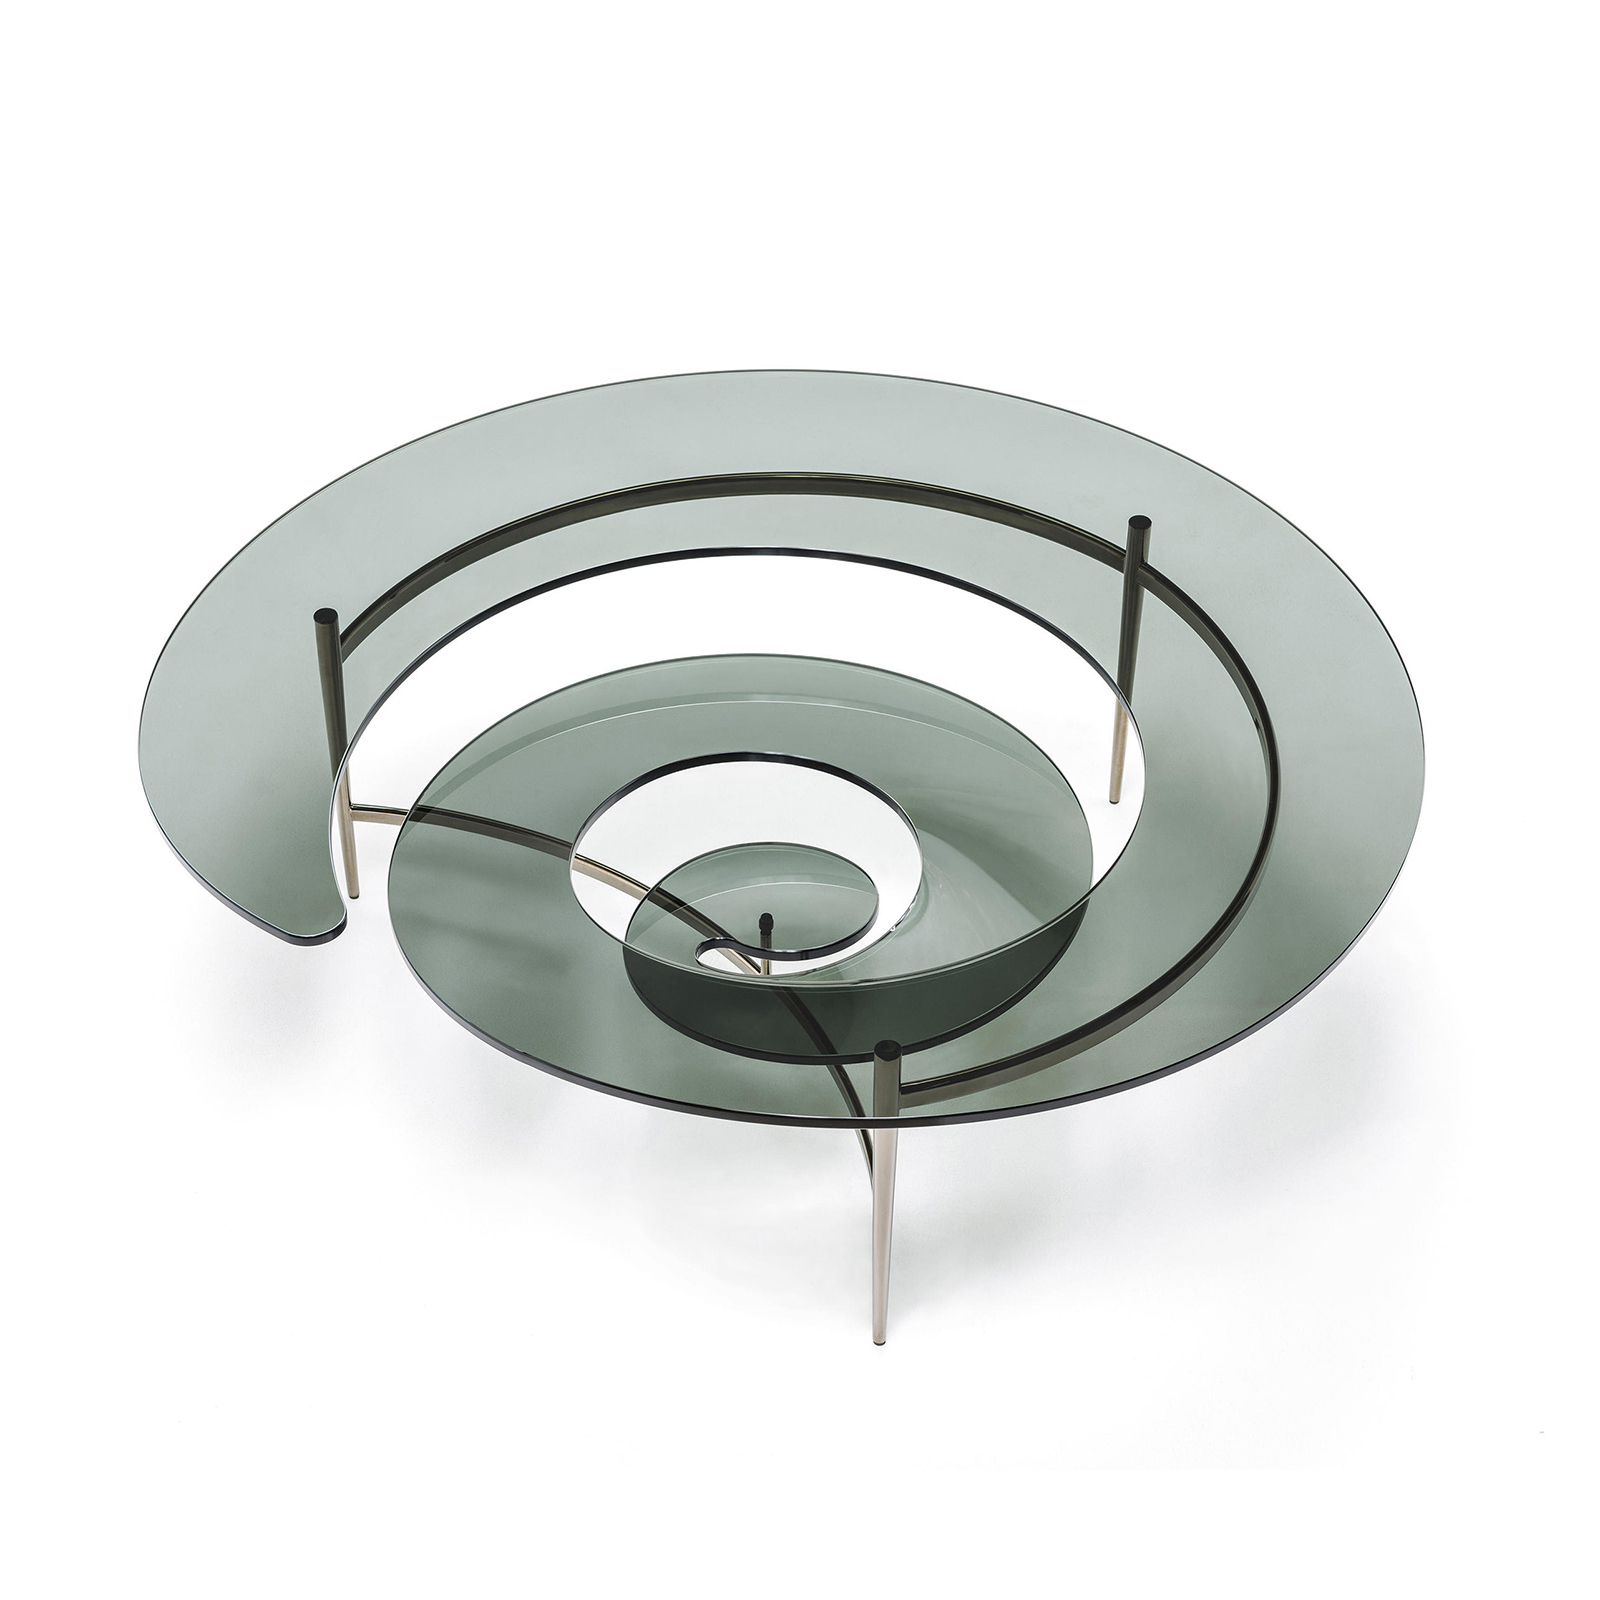 Table Luxe Table Basse Design En Verre Spirale Mobilier De Luxe